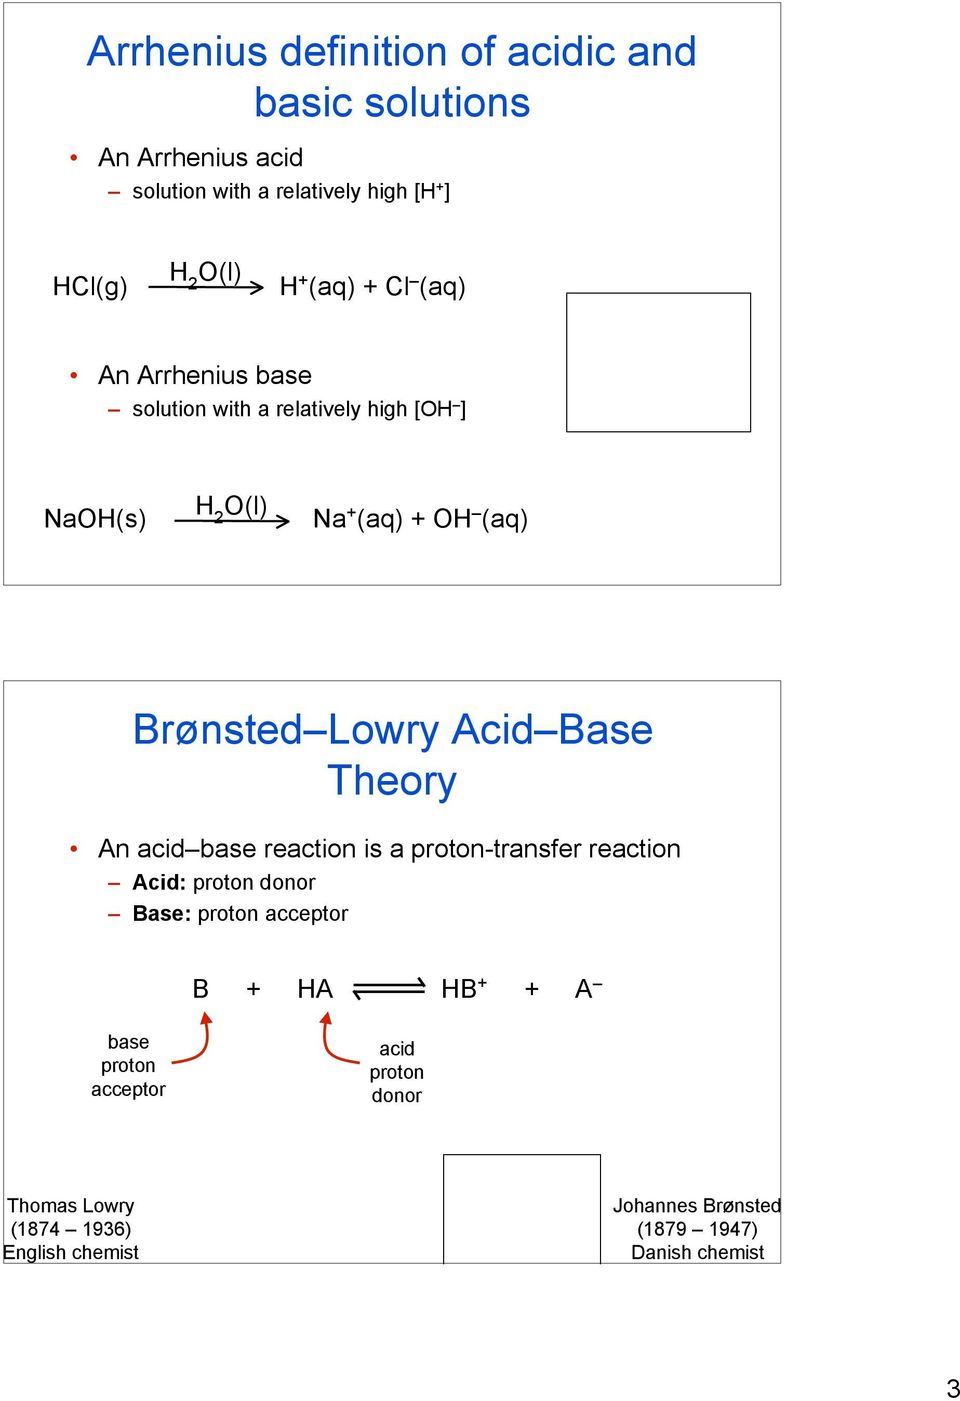 Acid Base Theory An acid base reaction is a proton-transfer reaction Acid: proton donor Base: proton acceptor B + HA HB + + A